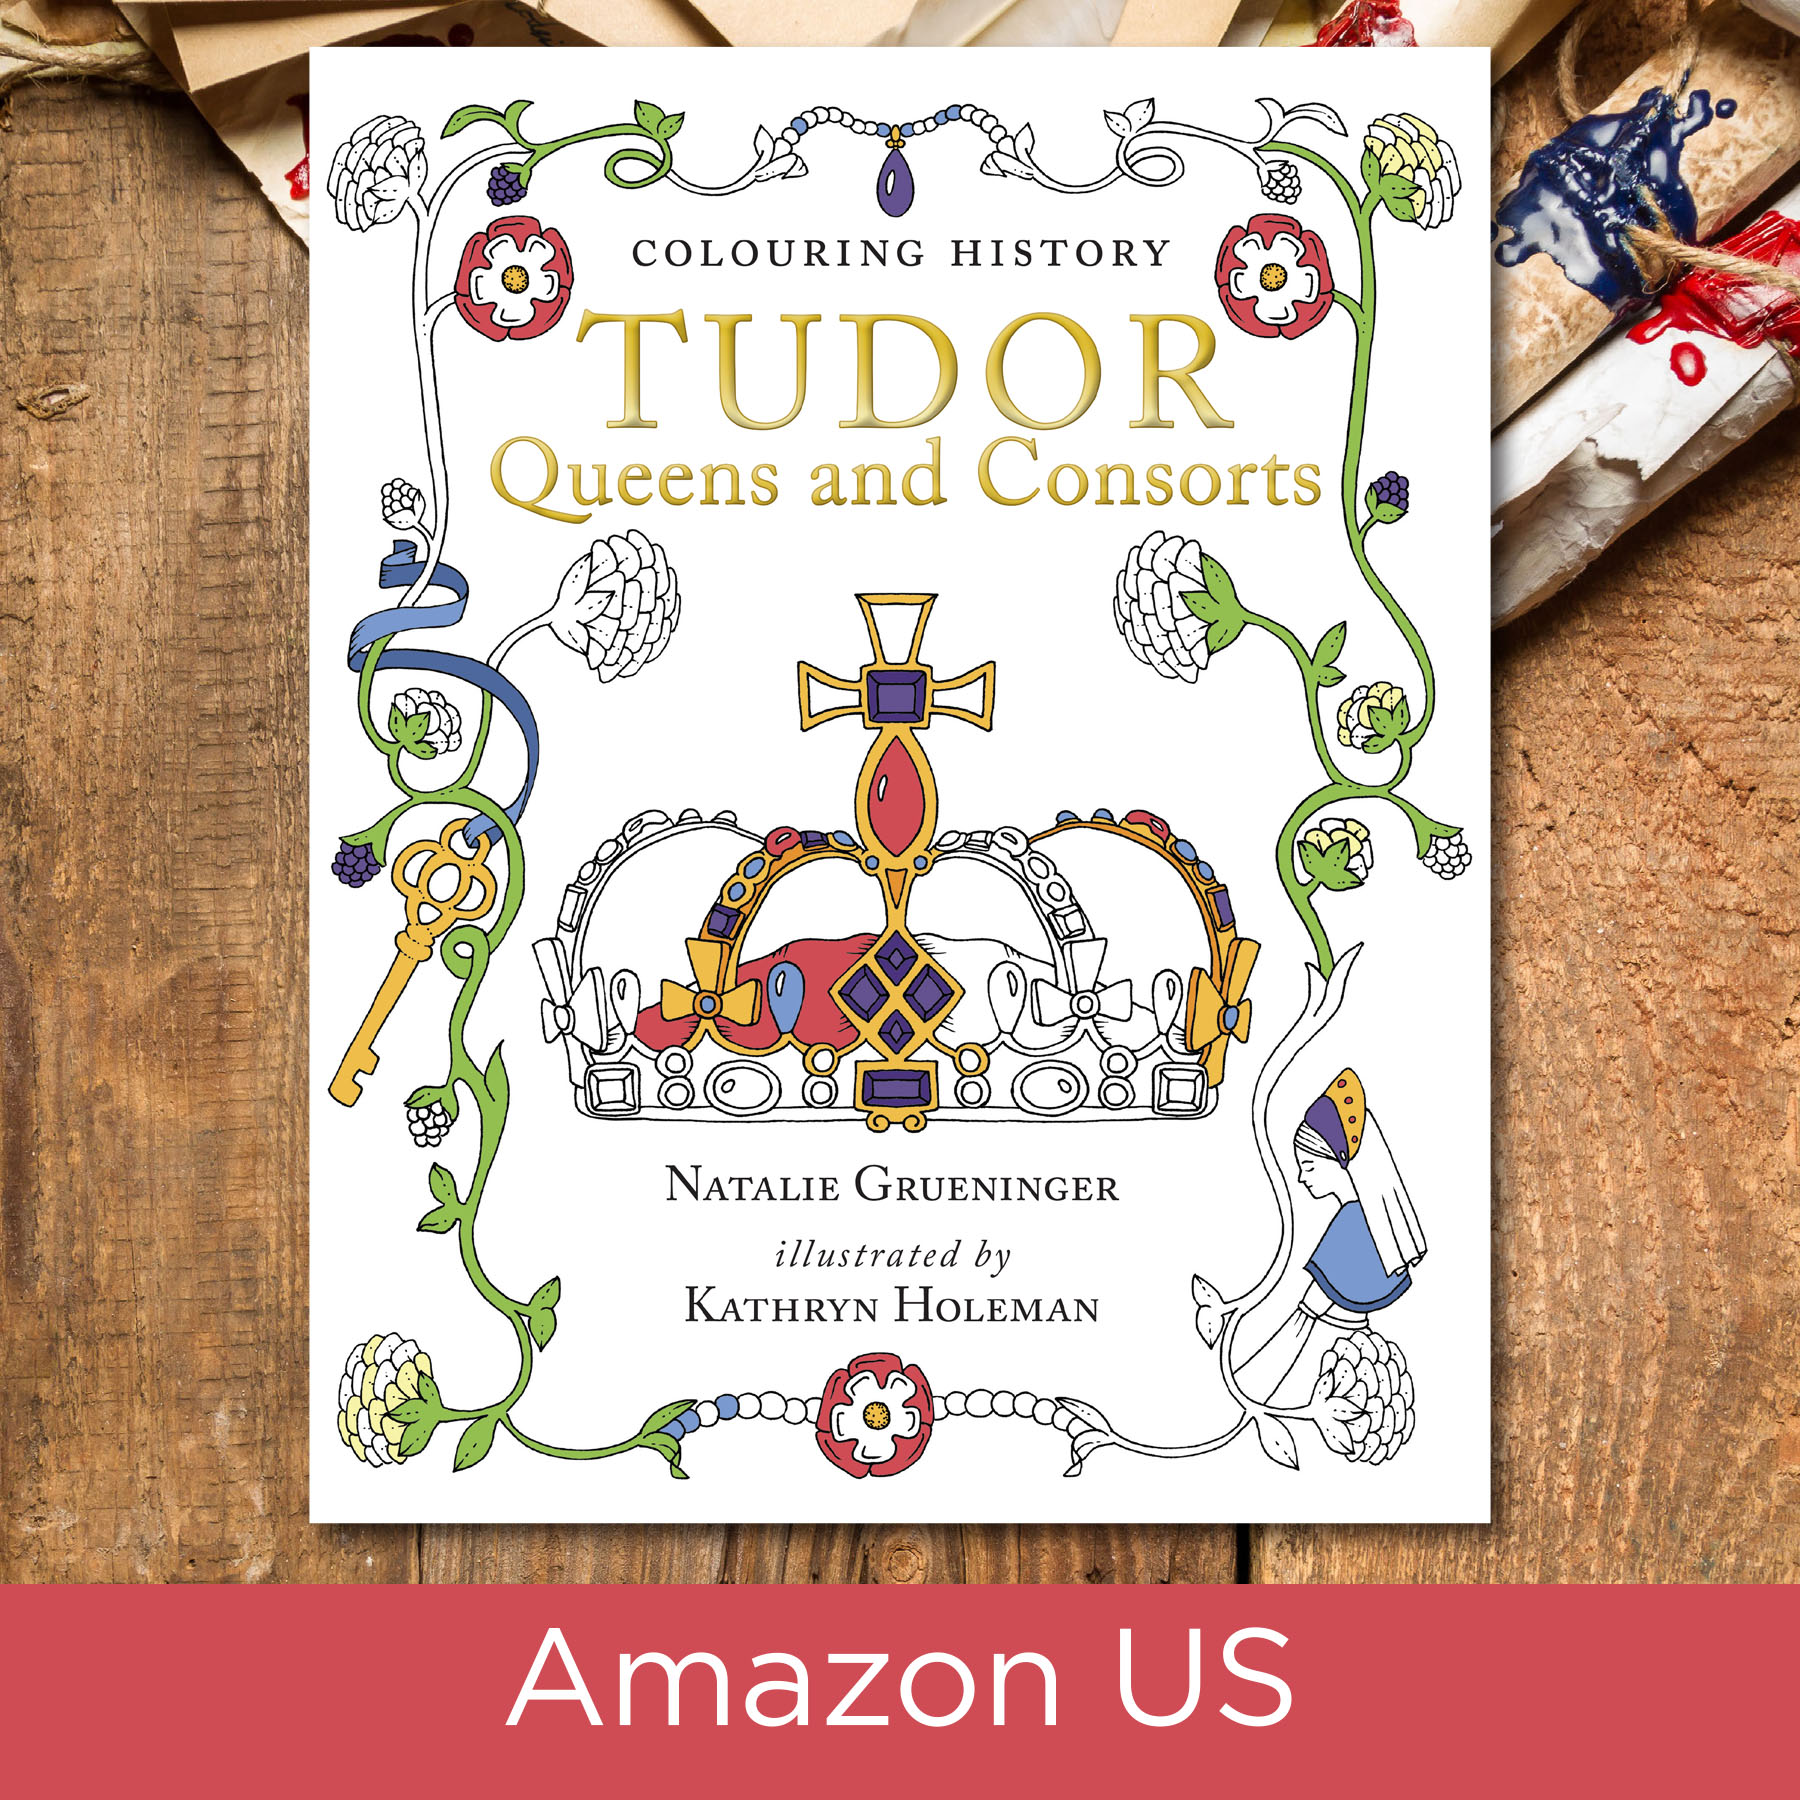 Tudor Queens and Consorts on Amazon US